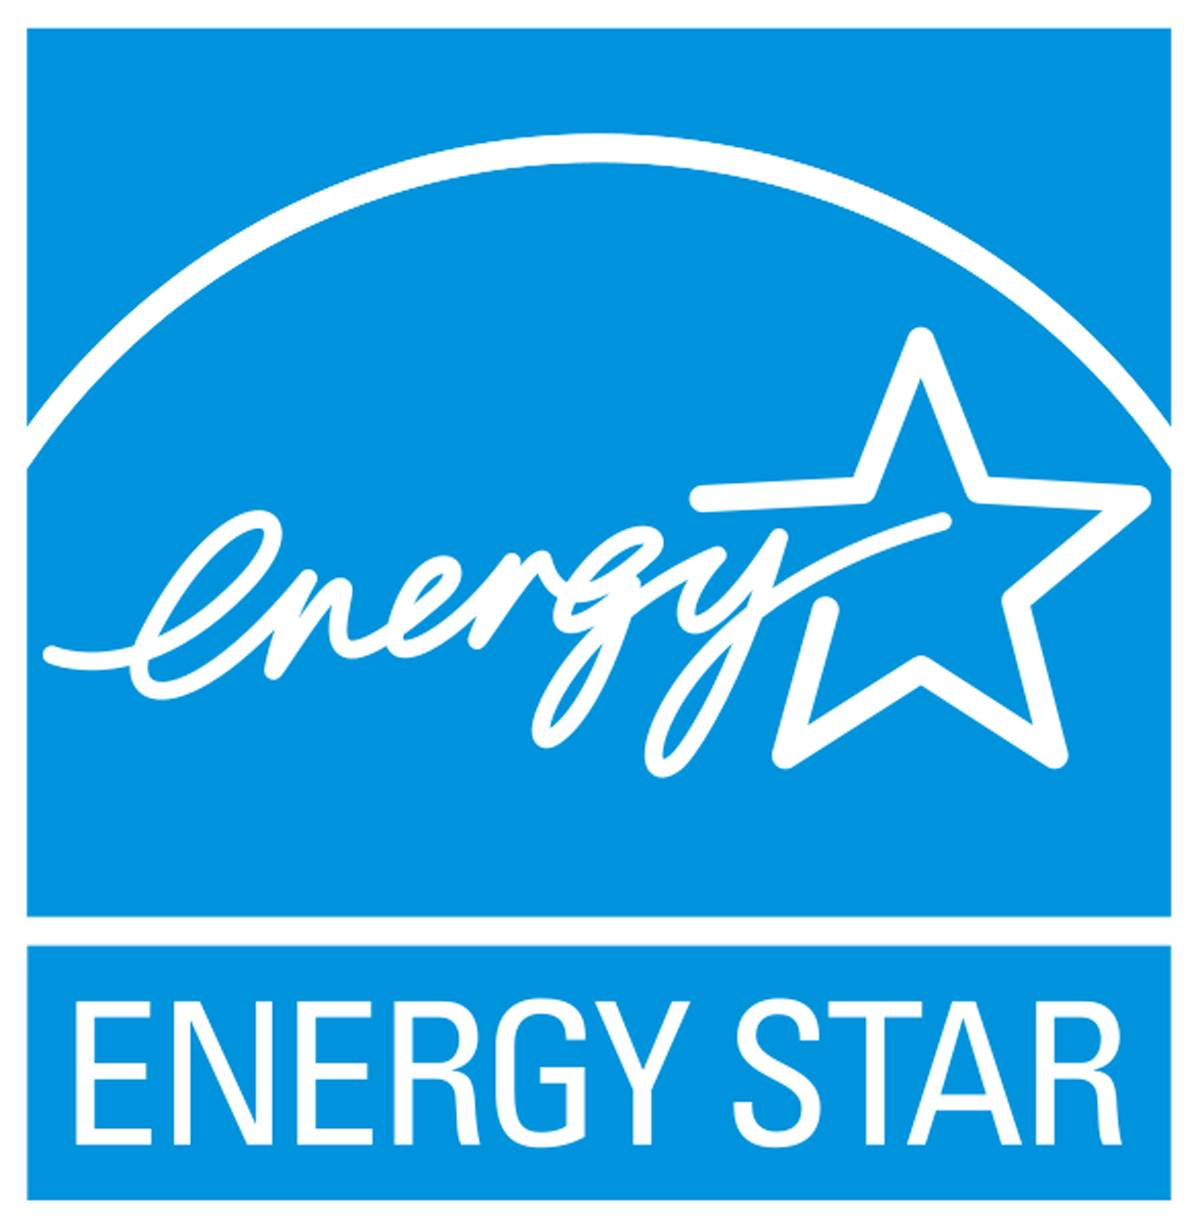 Visit the Energy Star site to see some energy saving tips - including air conditioning tune ups